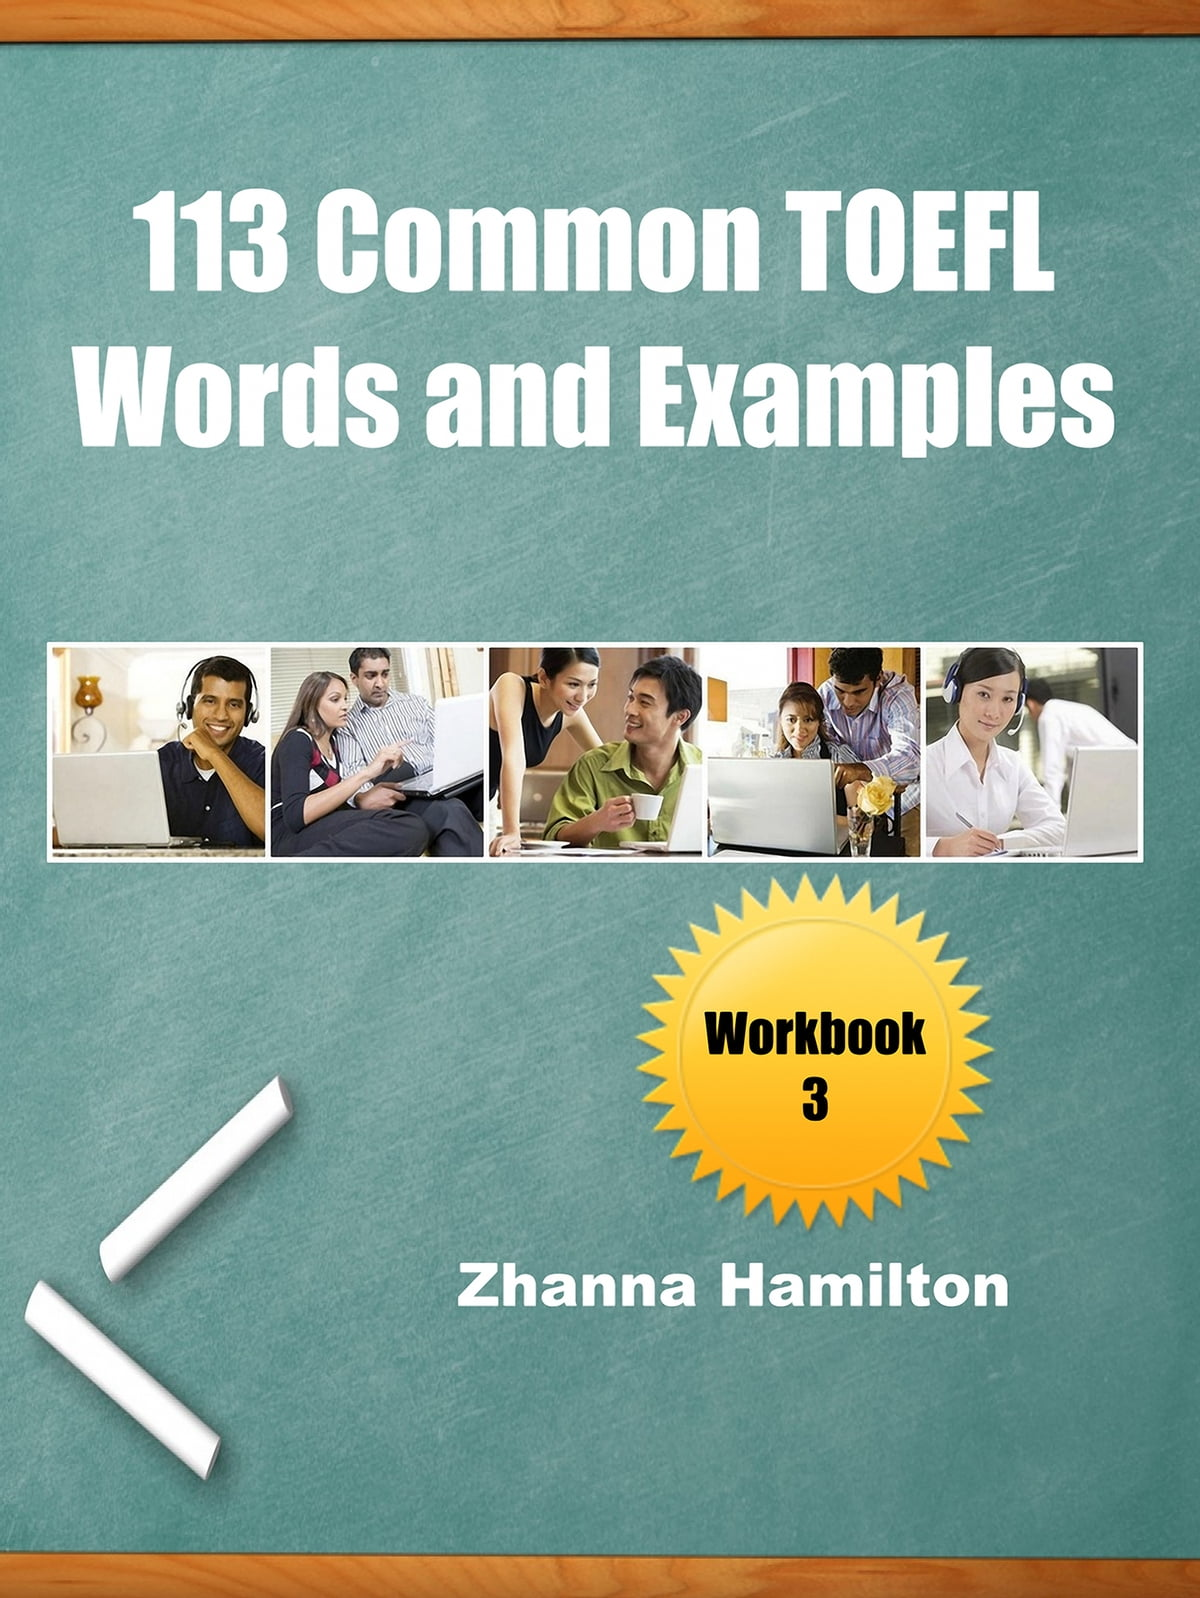 Workbooks relationship rescue workbook : 113 Common TOEFL Words and Examples: Workbook 3 eBook by Zhanna ...